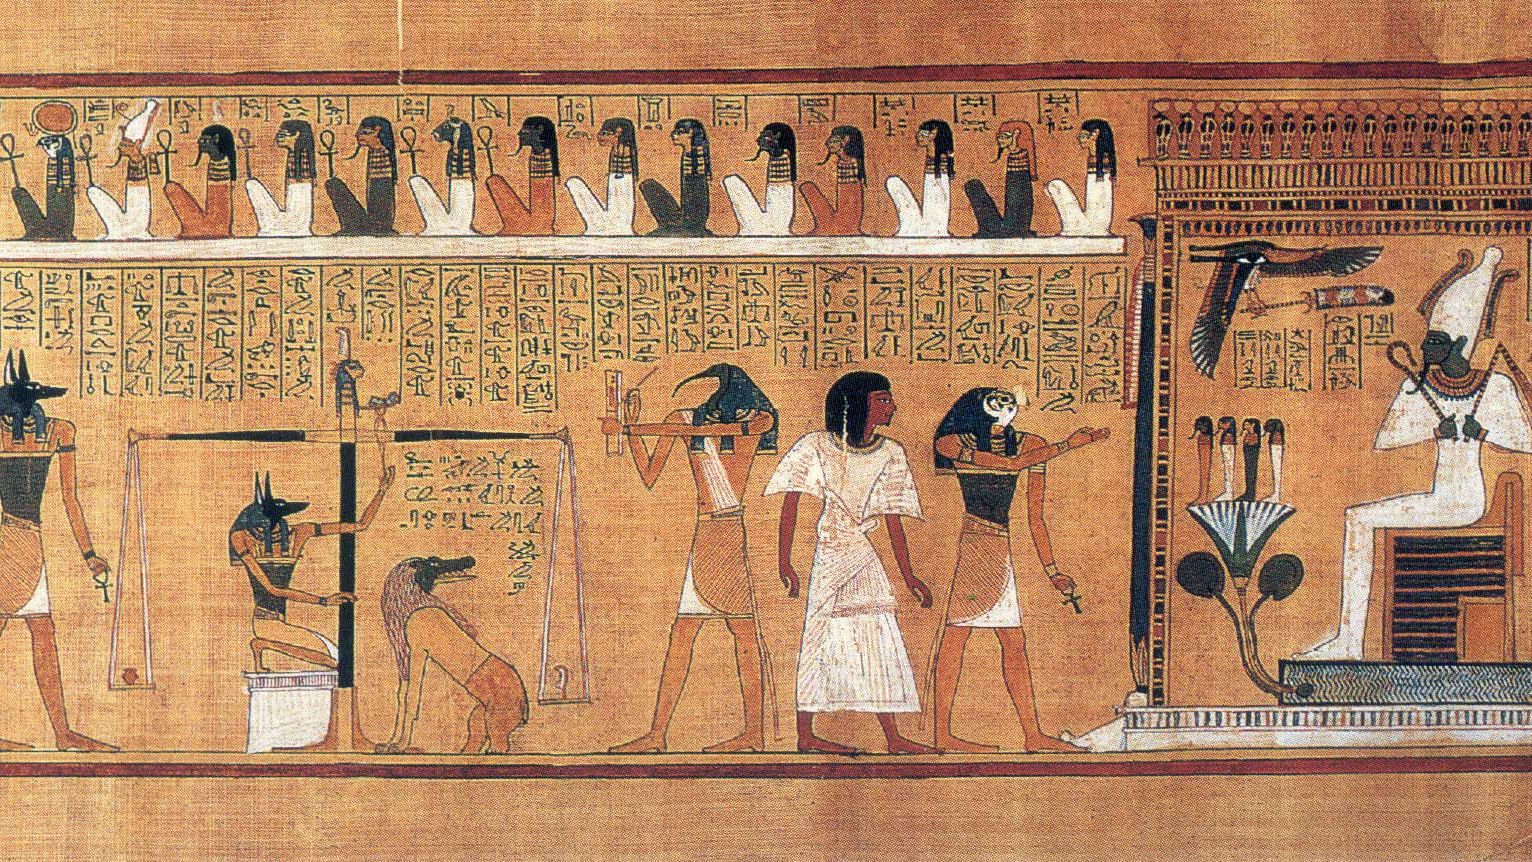 The Monsters And Mythical Creatures Of Egypt